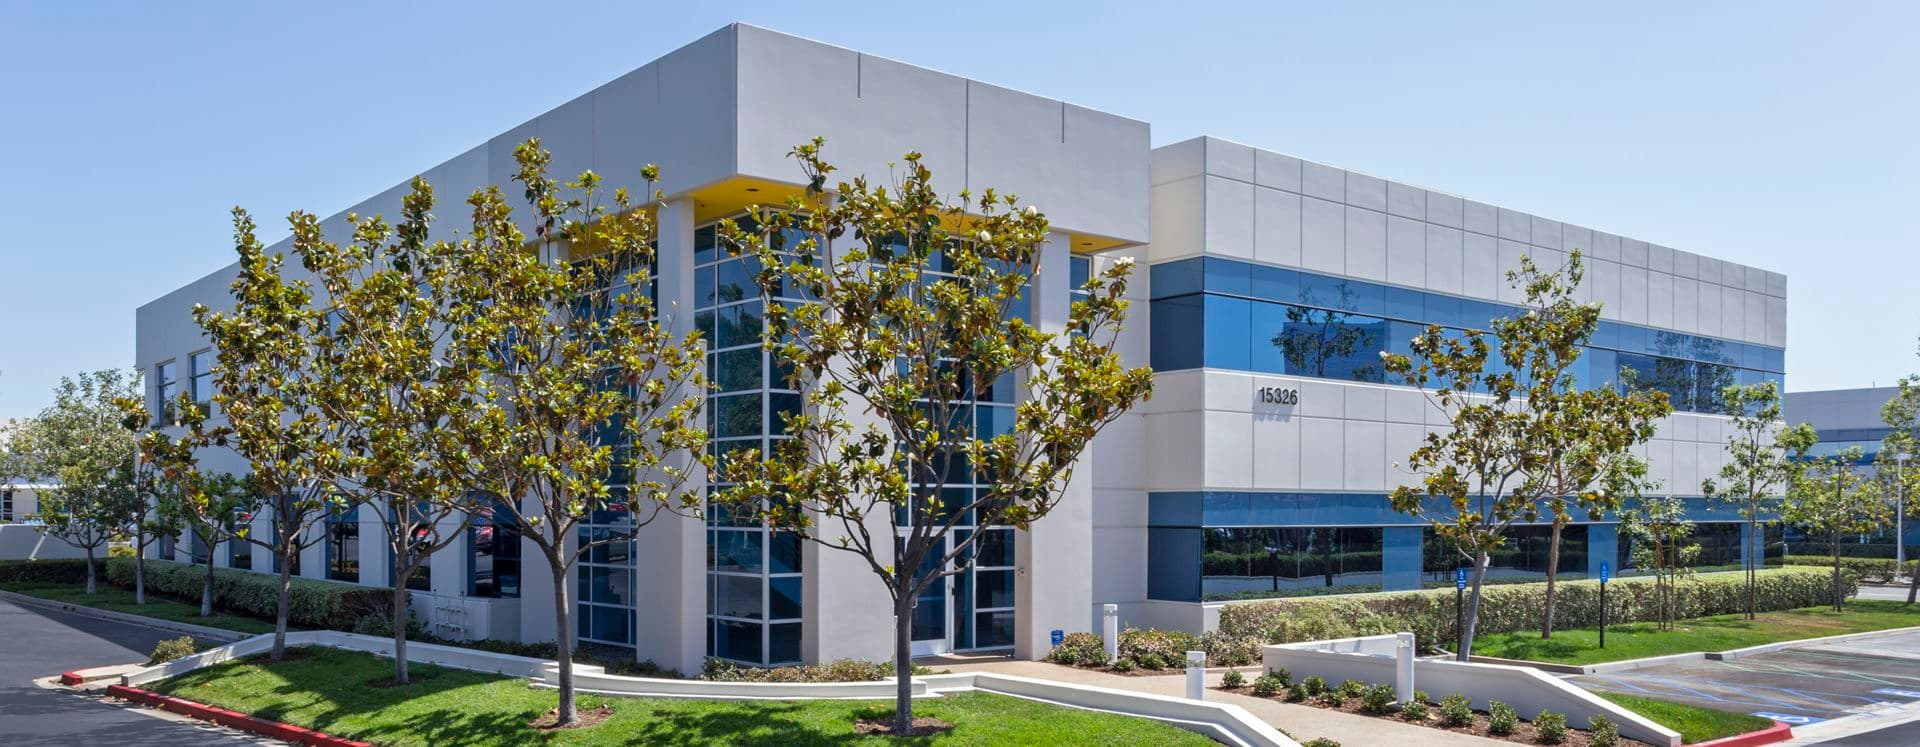 Exterior building photography of 15326 Alton Parkway at Alton/Technology in Irvine, CA